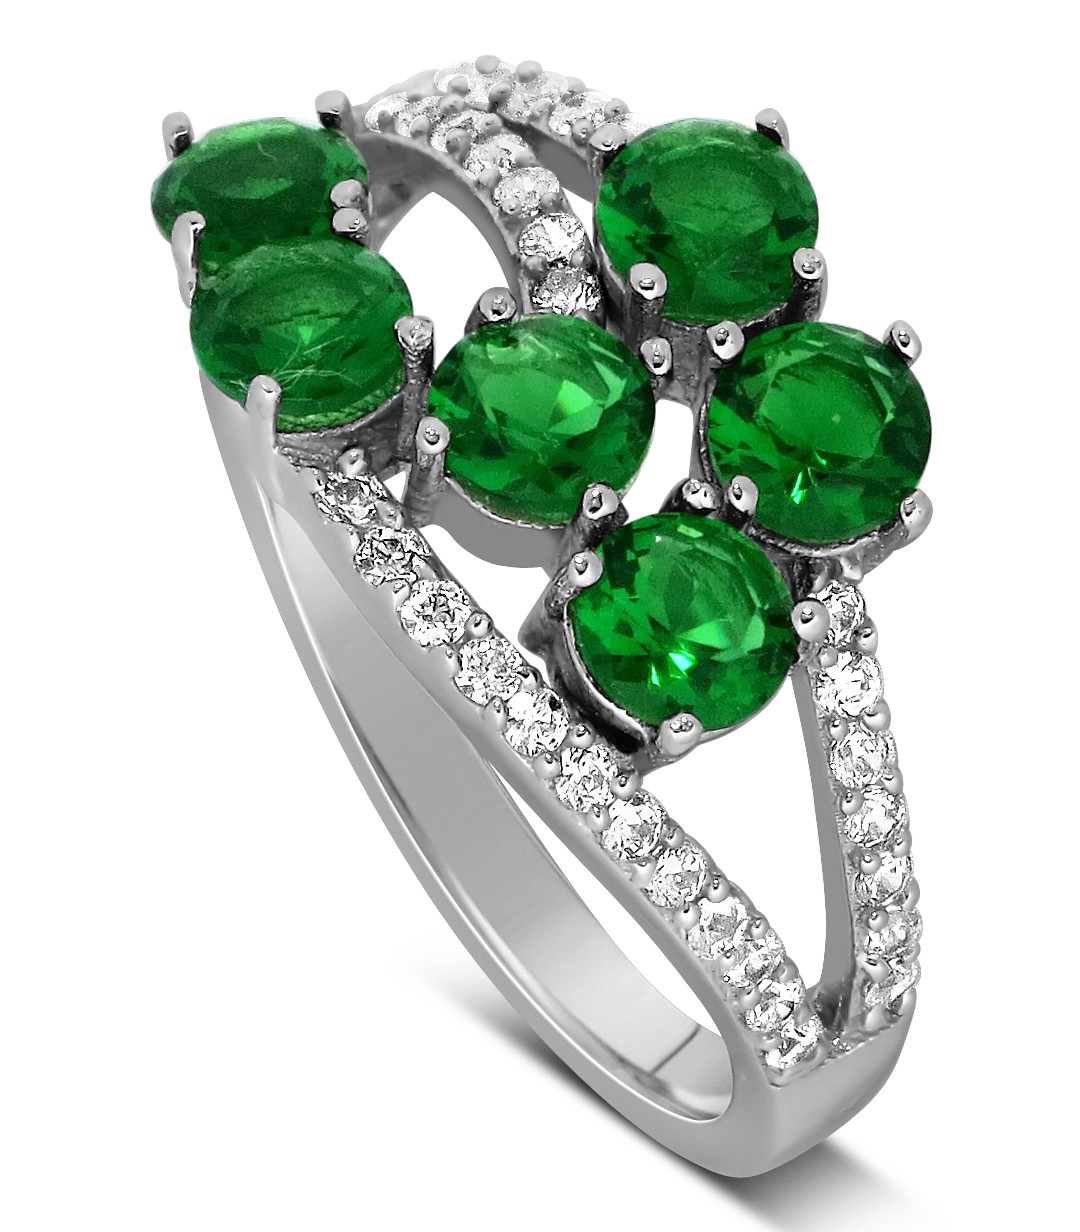 Unique 2 Carat Green Emerald and Diamond Ring for Women JeenJewels